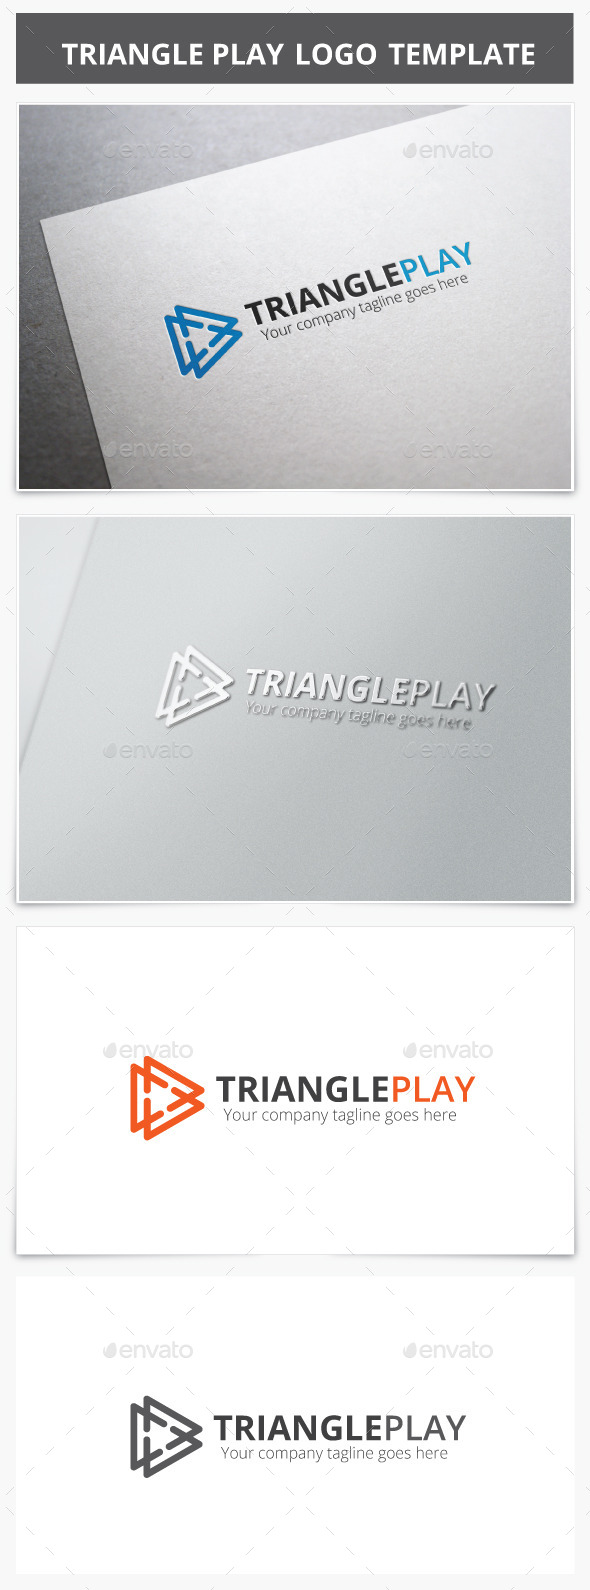 Triangle Play Logo - Vector Abstract